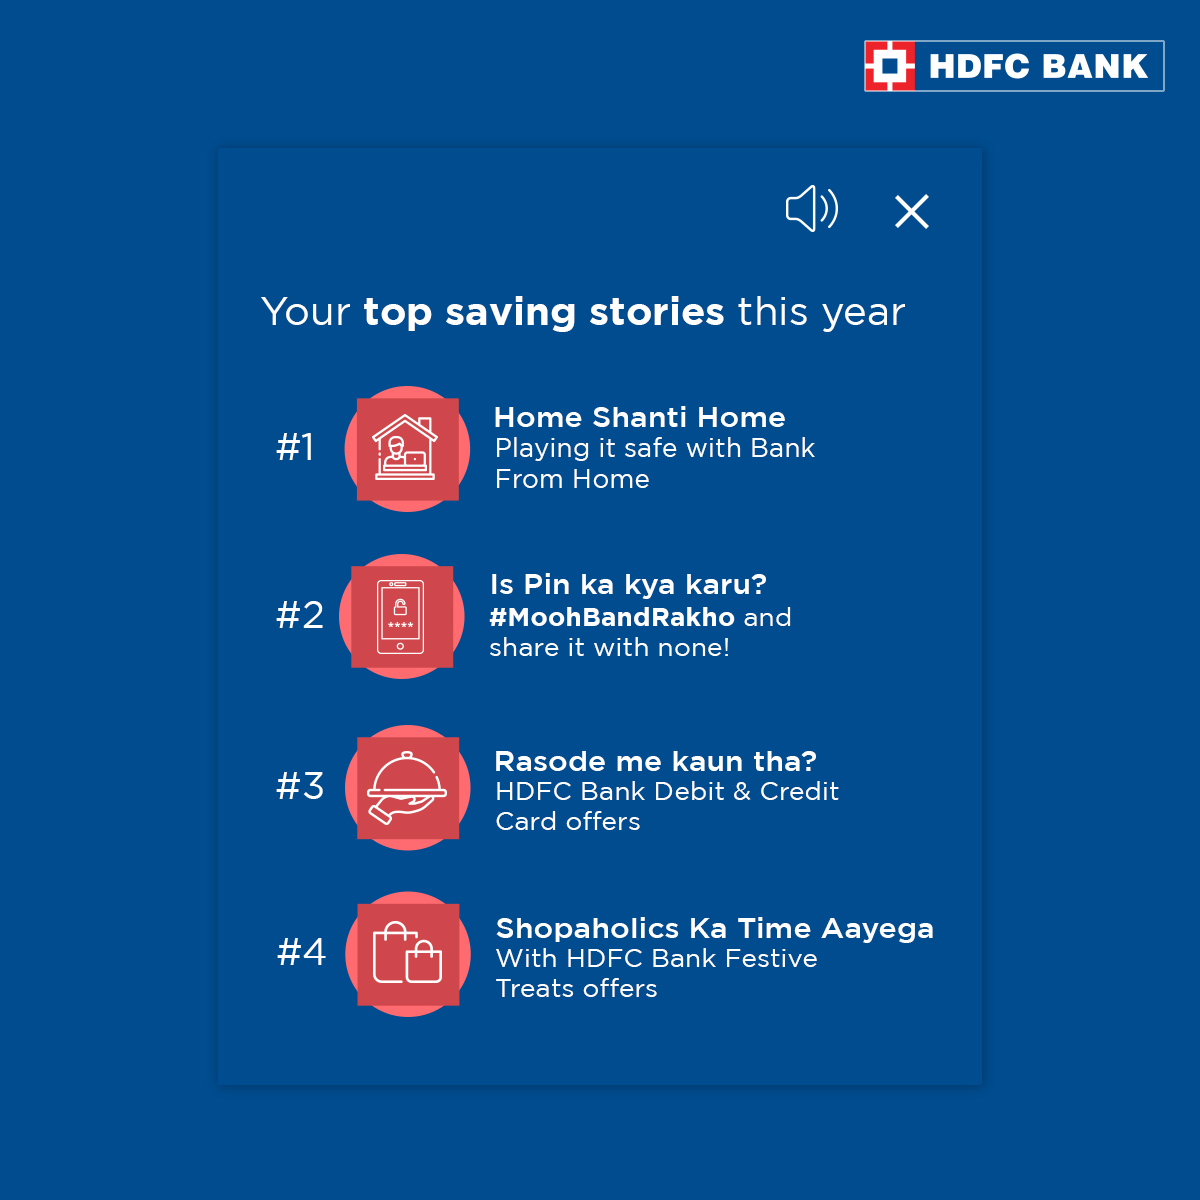 And that's how 2020 looked like with HDFC Bank! #2020Wrapped   #BankFromHome #FestiveTreats